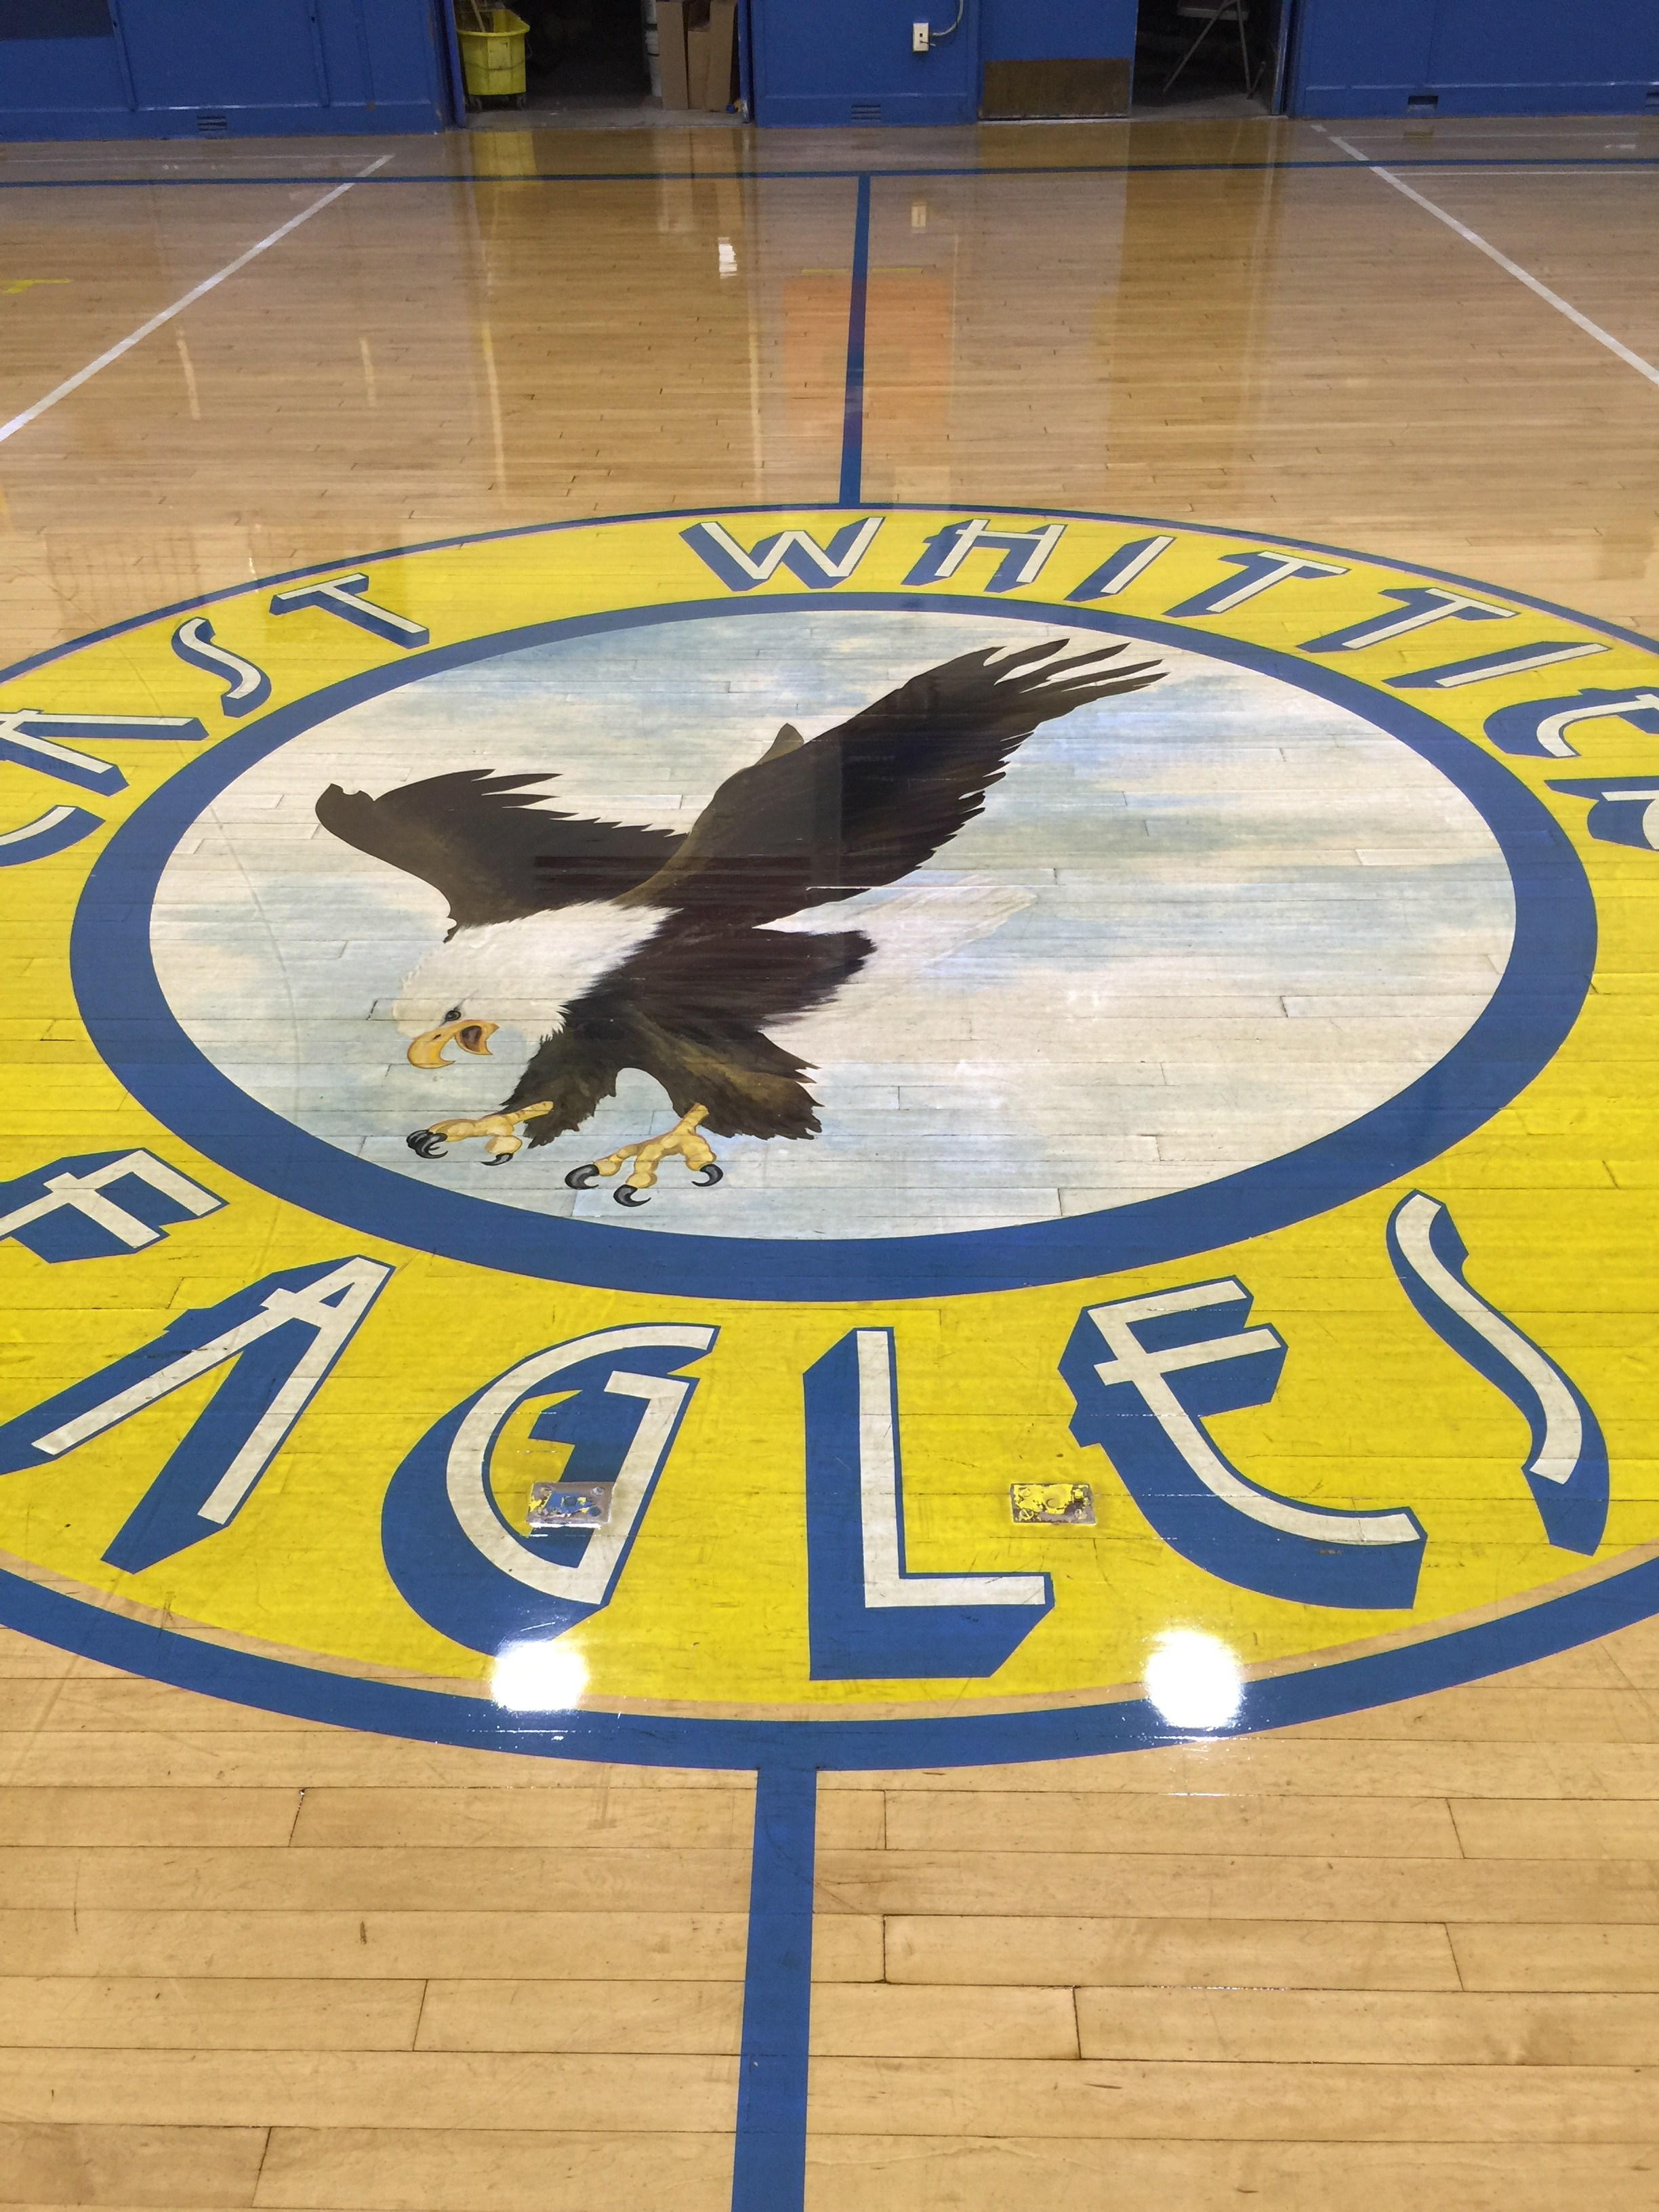 East Whittier Middle School logo on gym floor after waxing.